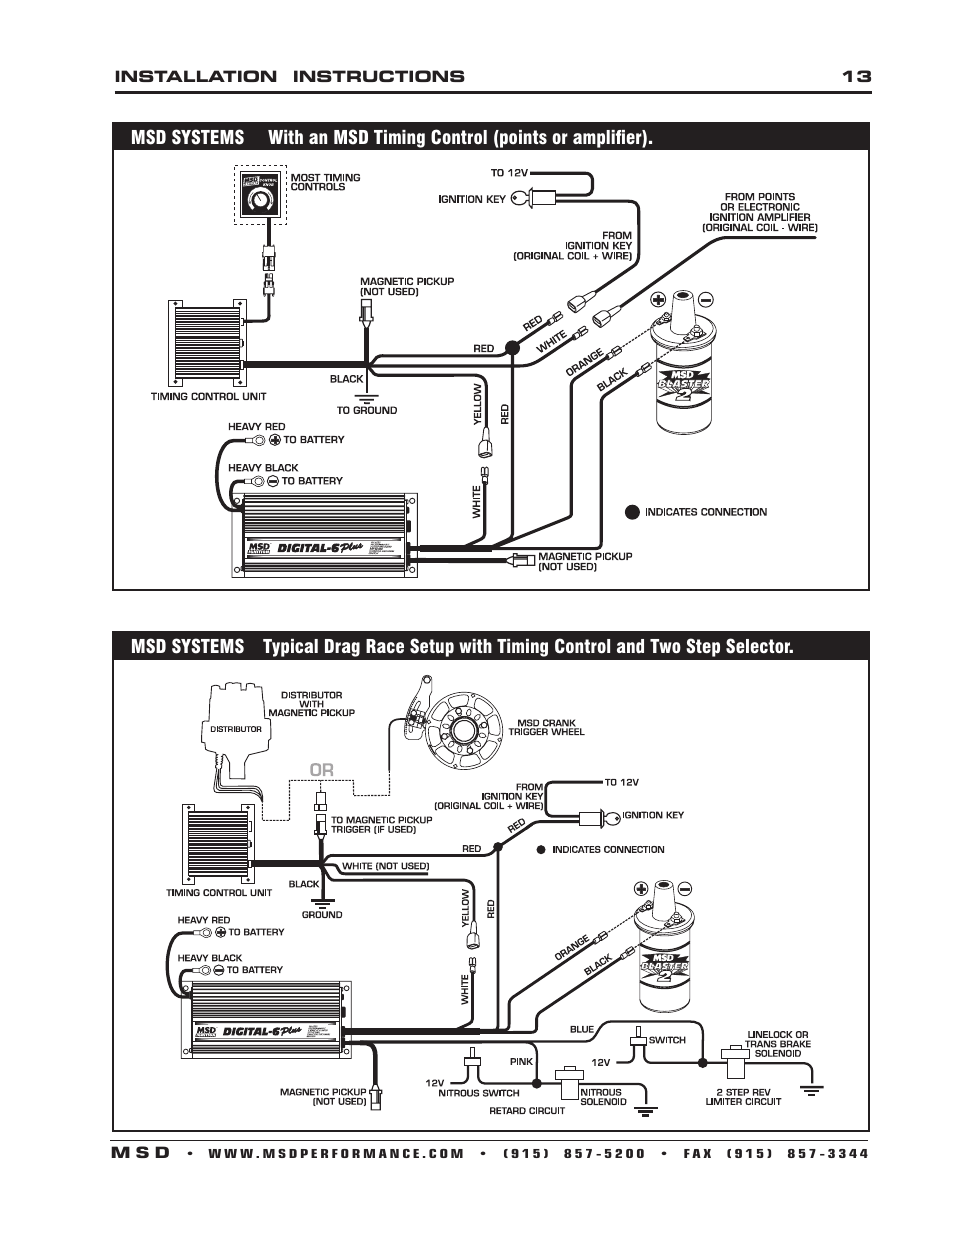 Rpc Distributor Wiring Diagram Starting Know About Exiss Trailer Msd Digital 6 Plus